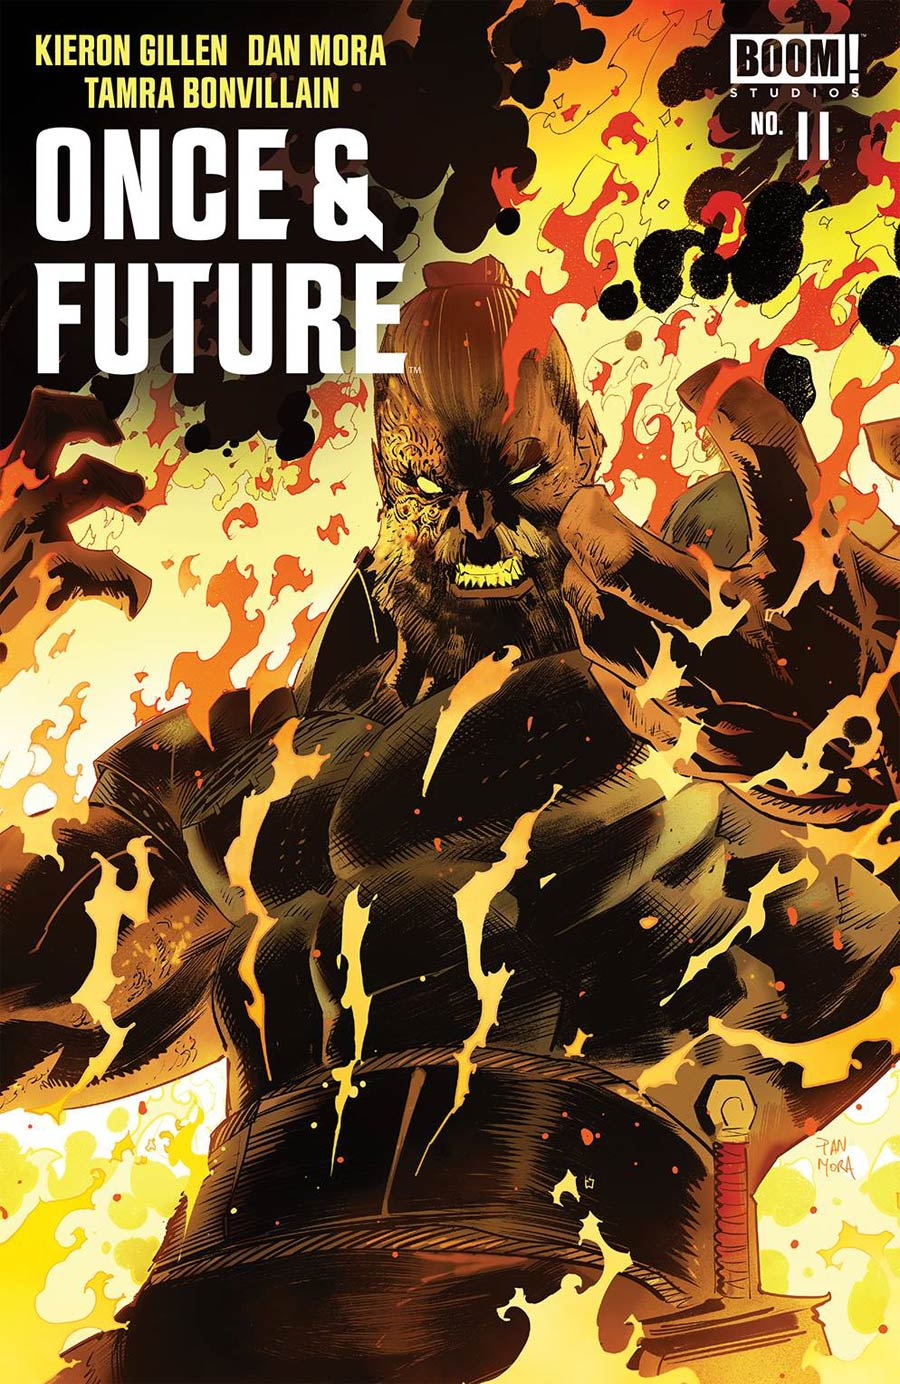 Once & Future #11 (2020)